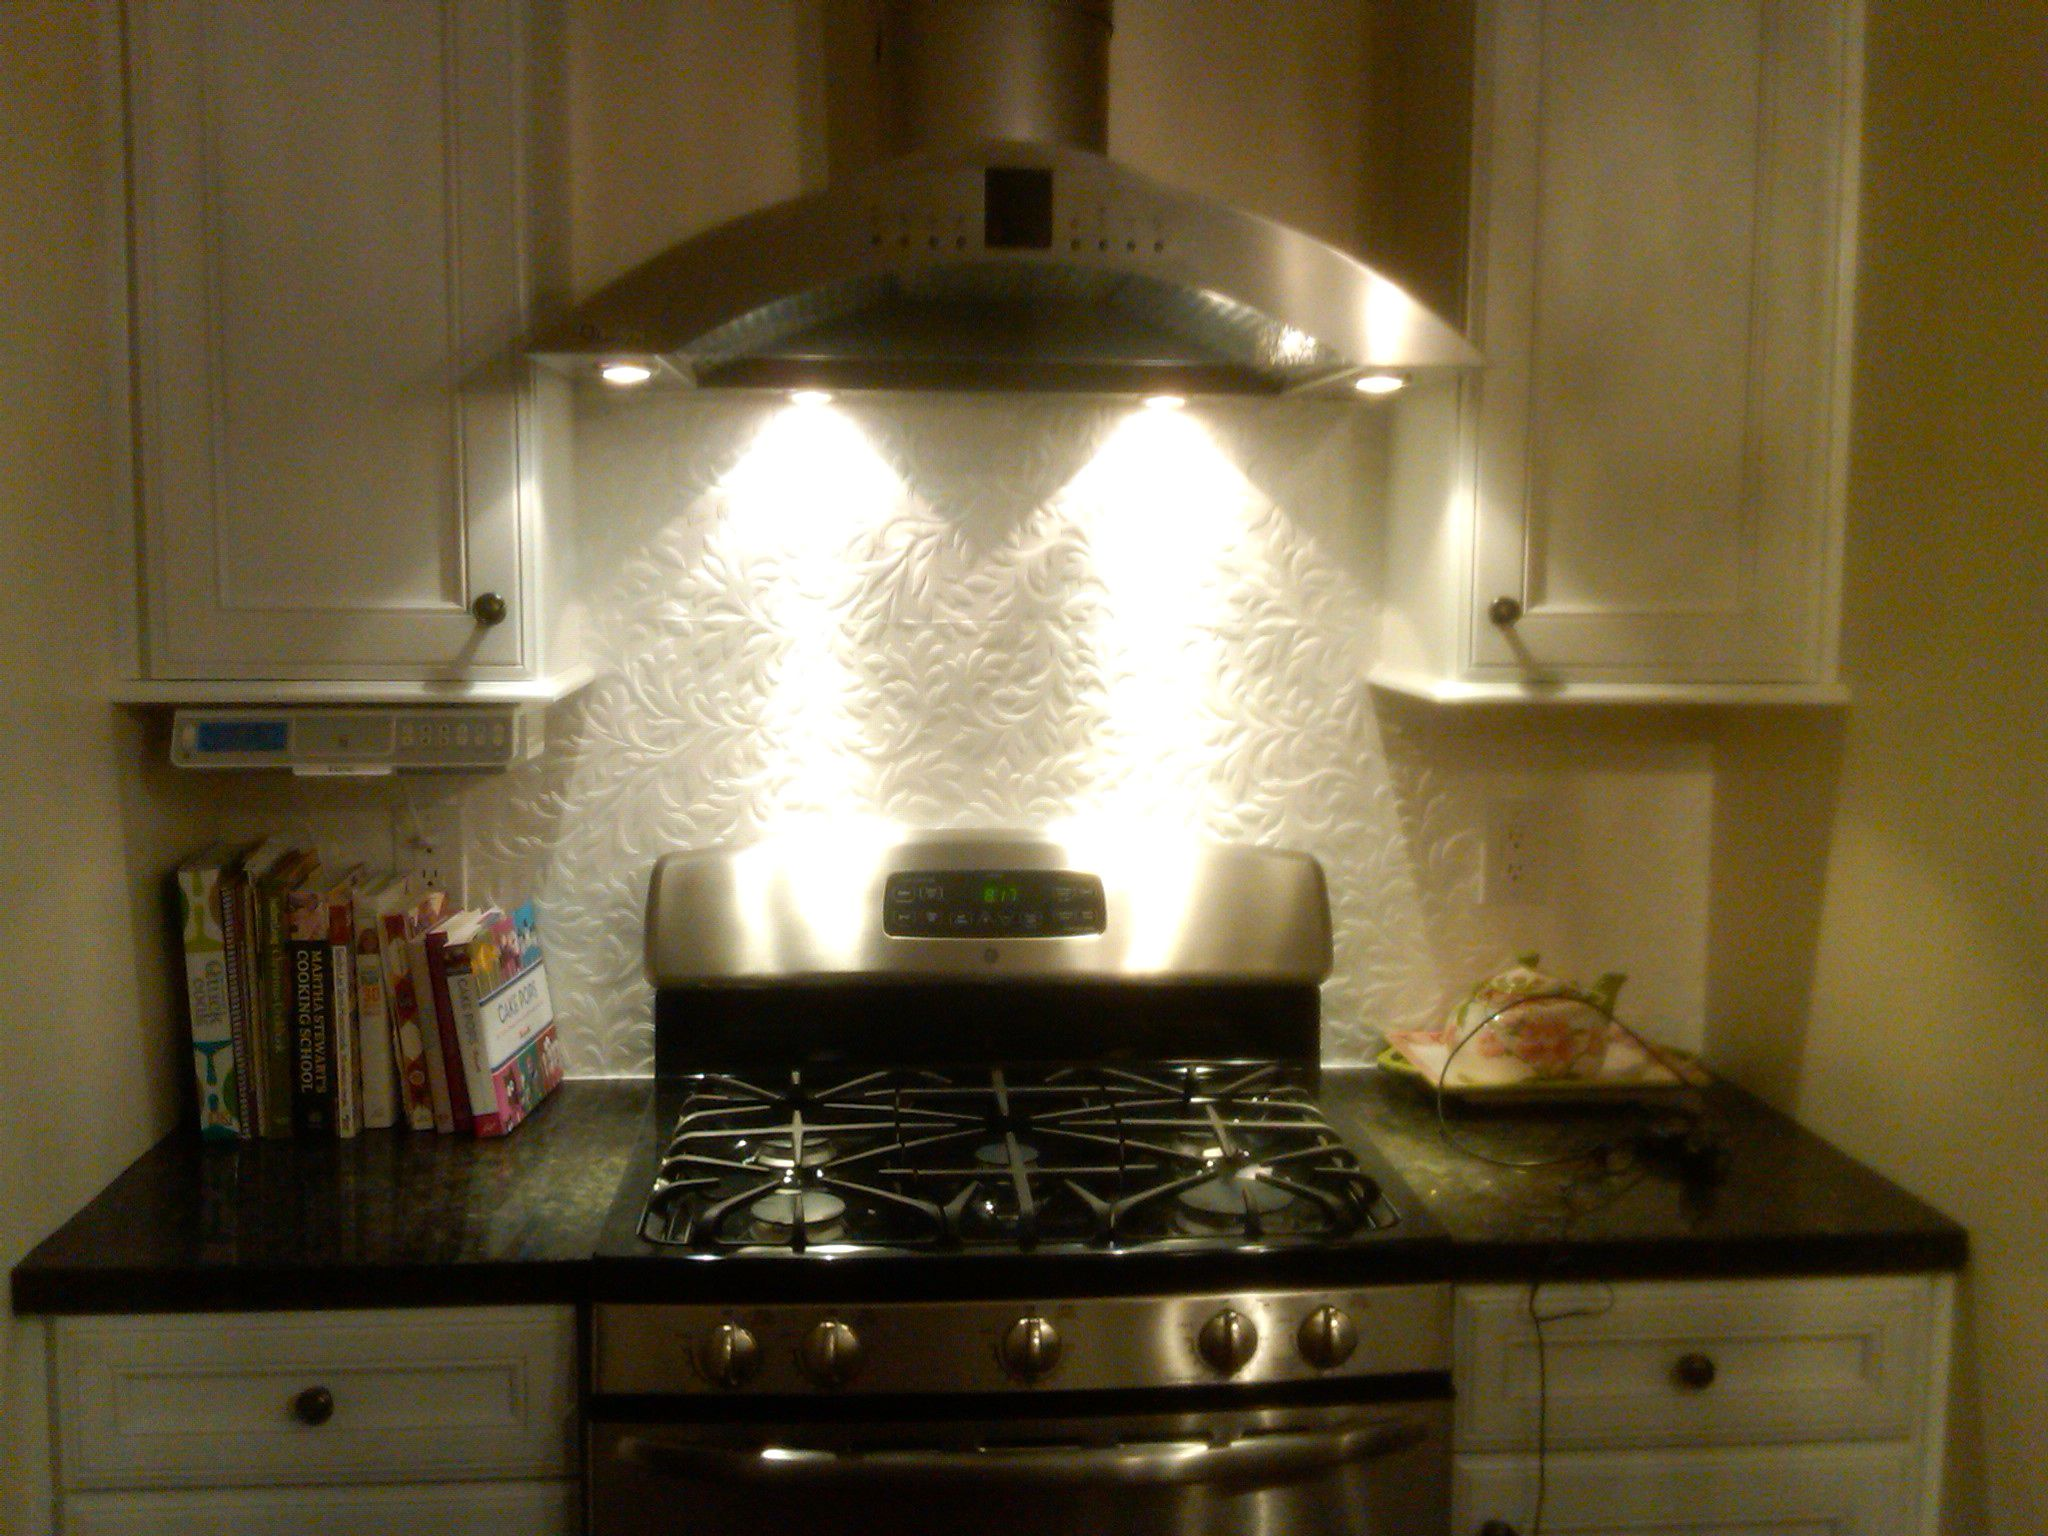 Kitchen Backsplash Ideas Using Wallpaper Wallpaper Backsplash Use Anaglypta Textured Wallpaper